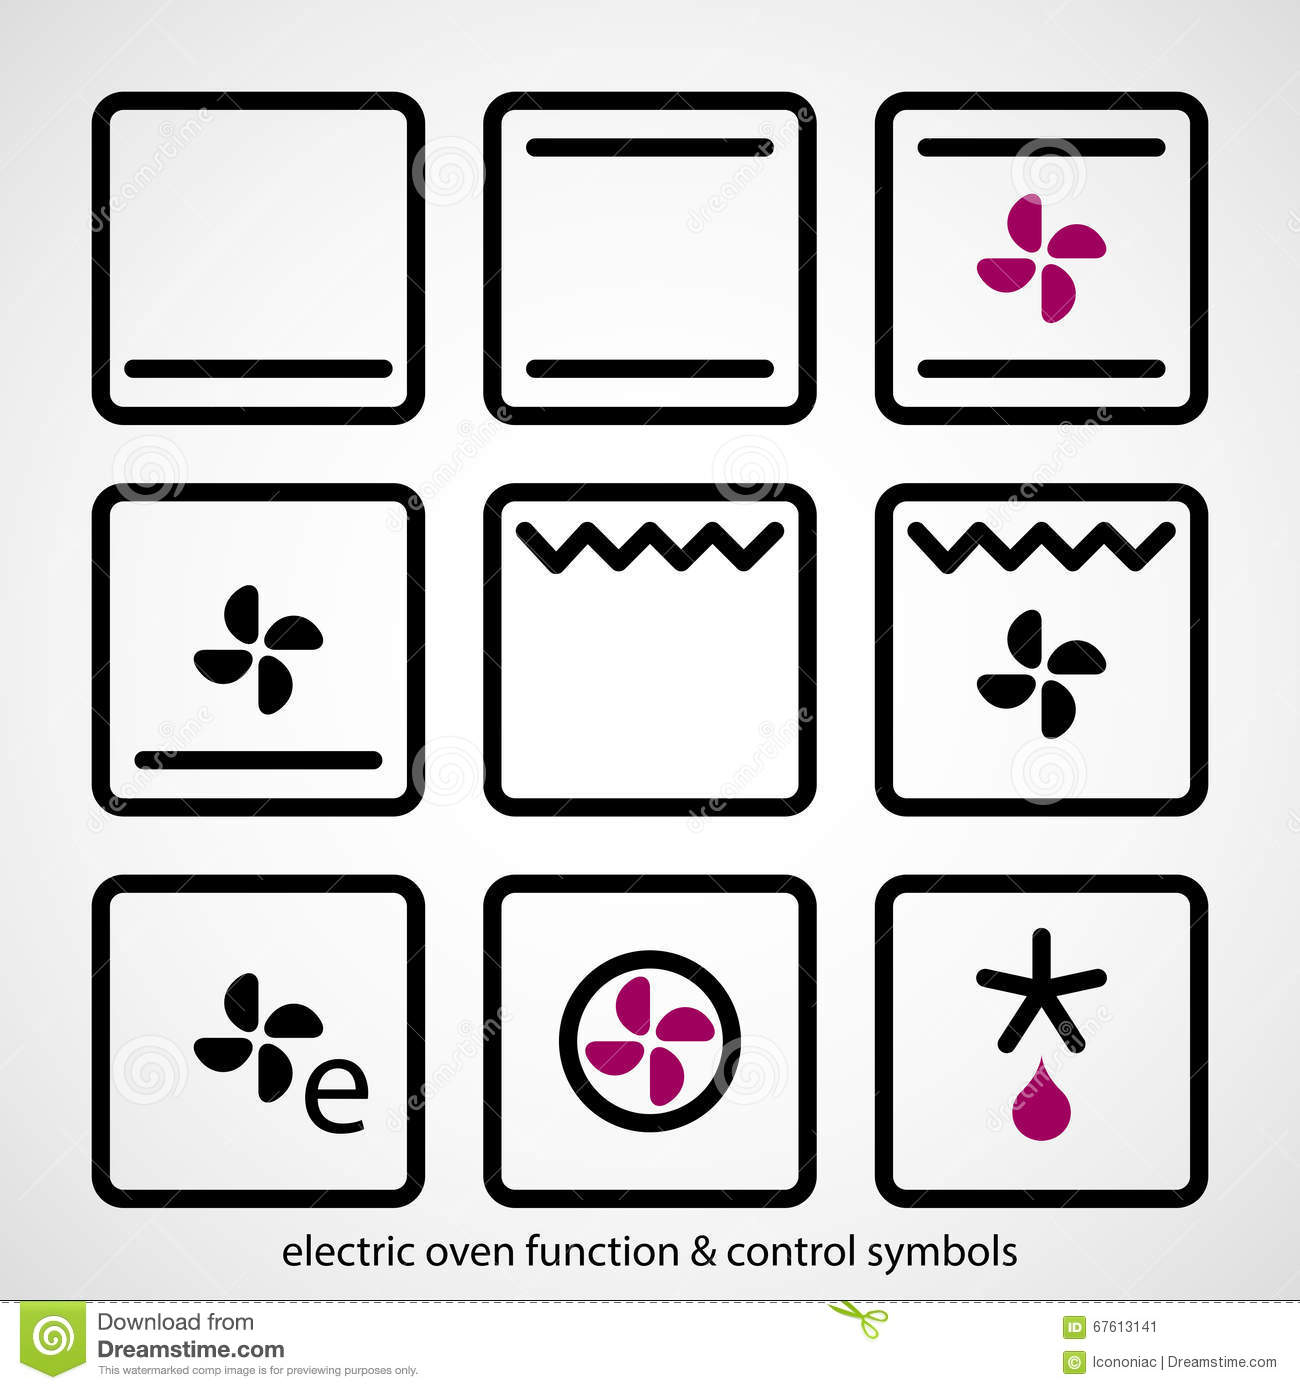 electric oven function control symbols stock vector image 67613141. Black Bedroom Furniture Sets. Home Design Ideas